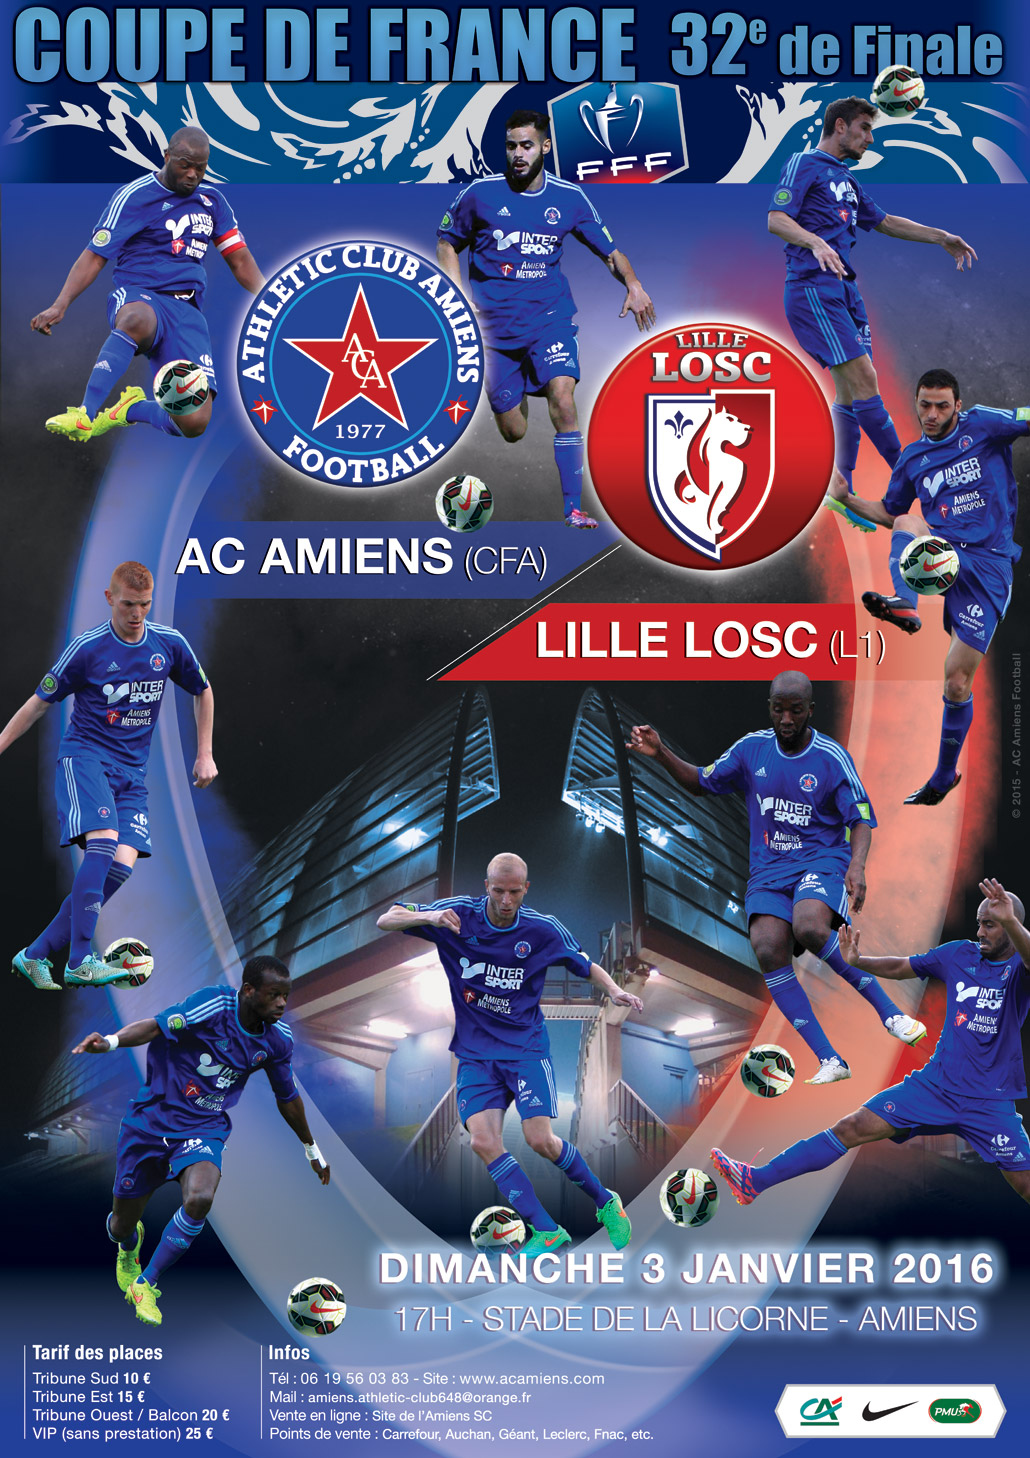 Athletic club amiens football coupe de france 2015 2016 32e de finale billetterie - Amiens ac lille coupe de france ...